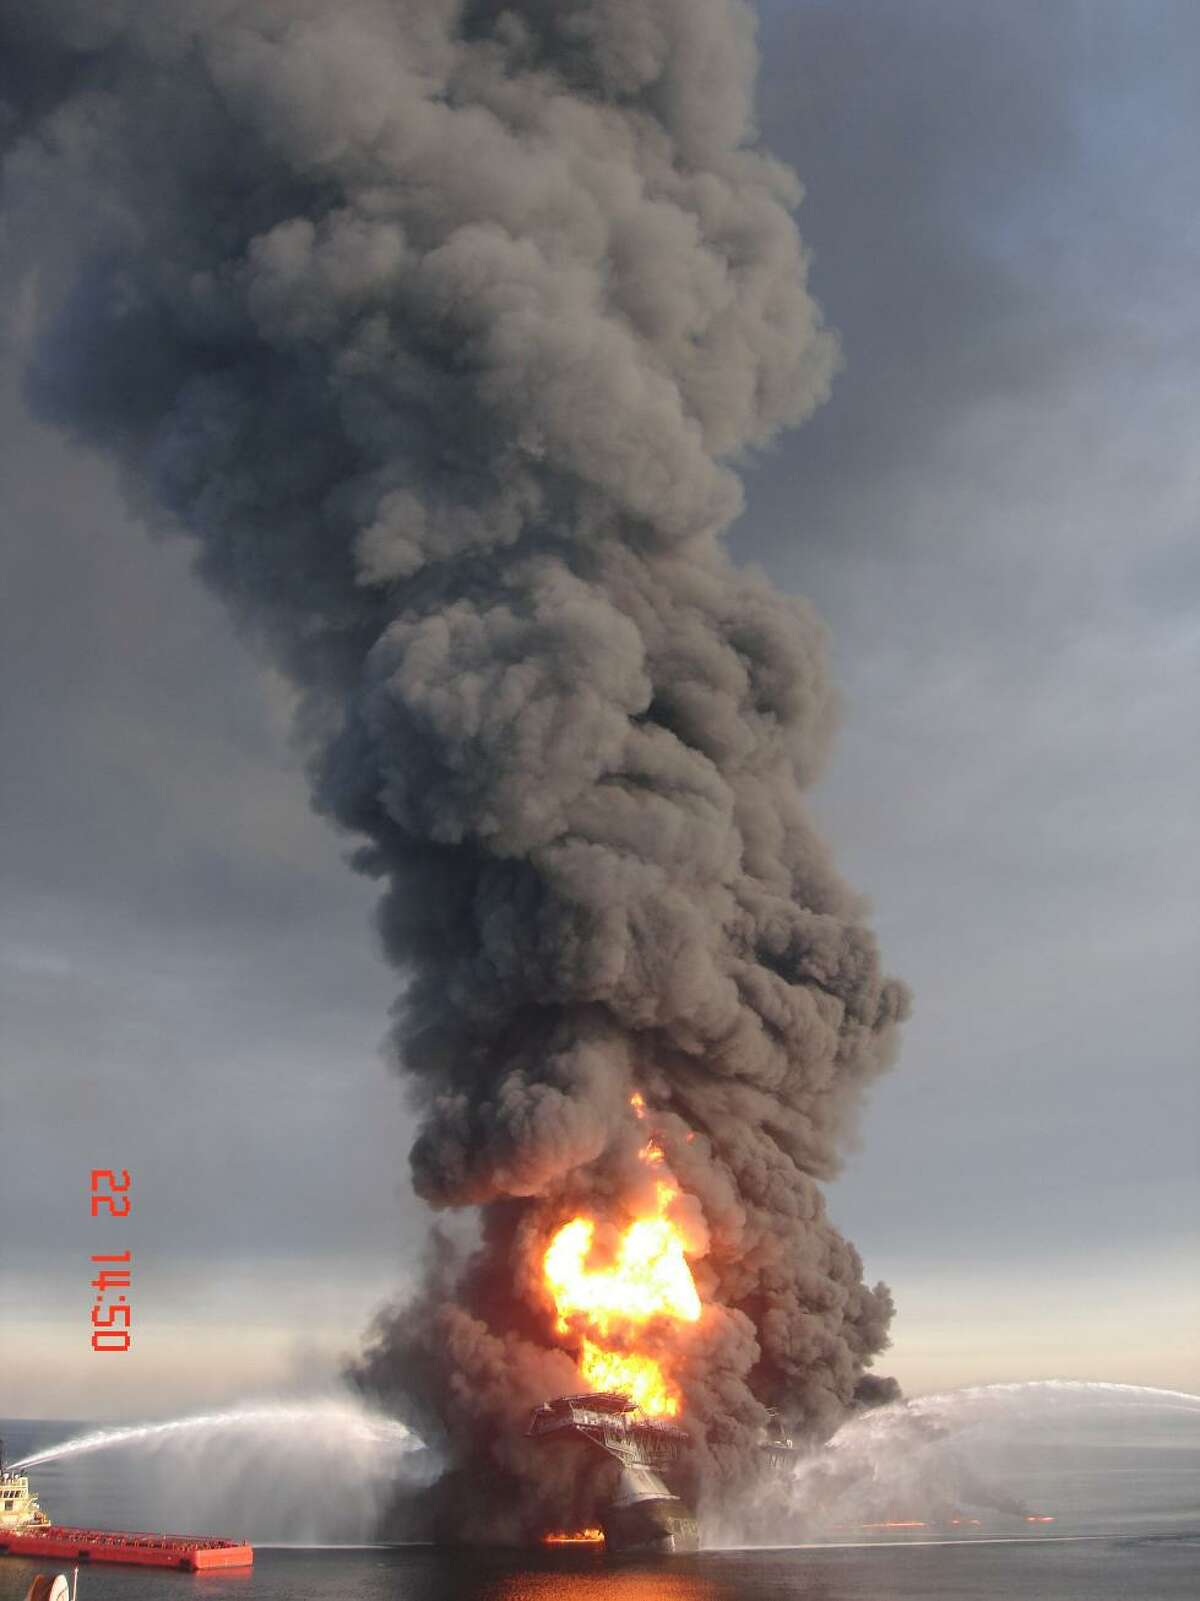 The Deepwater Horizon drilling rig is seen in a photo obtained from an anonymous source via WDSU in New Orleans.